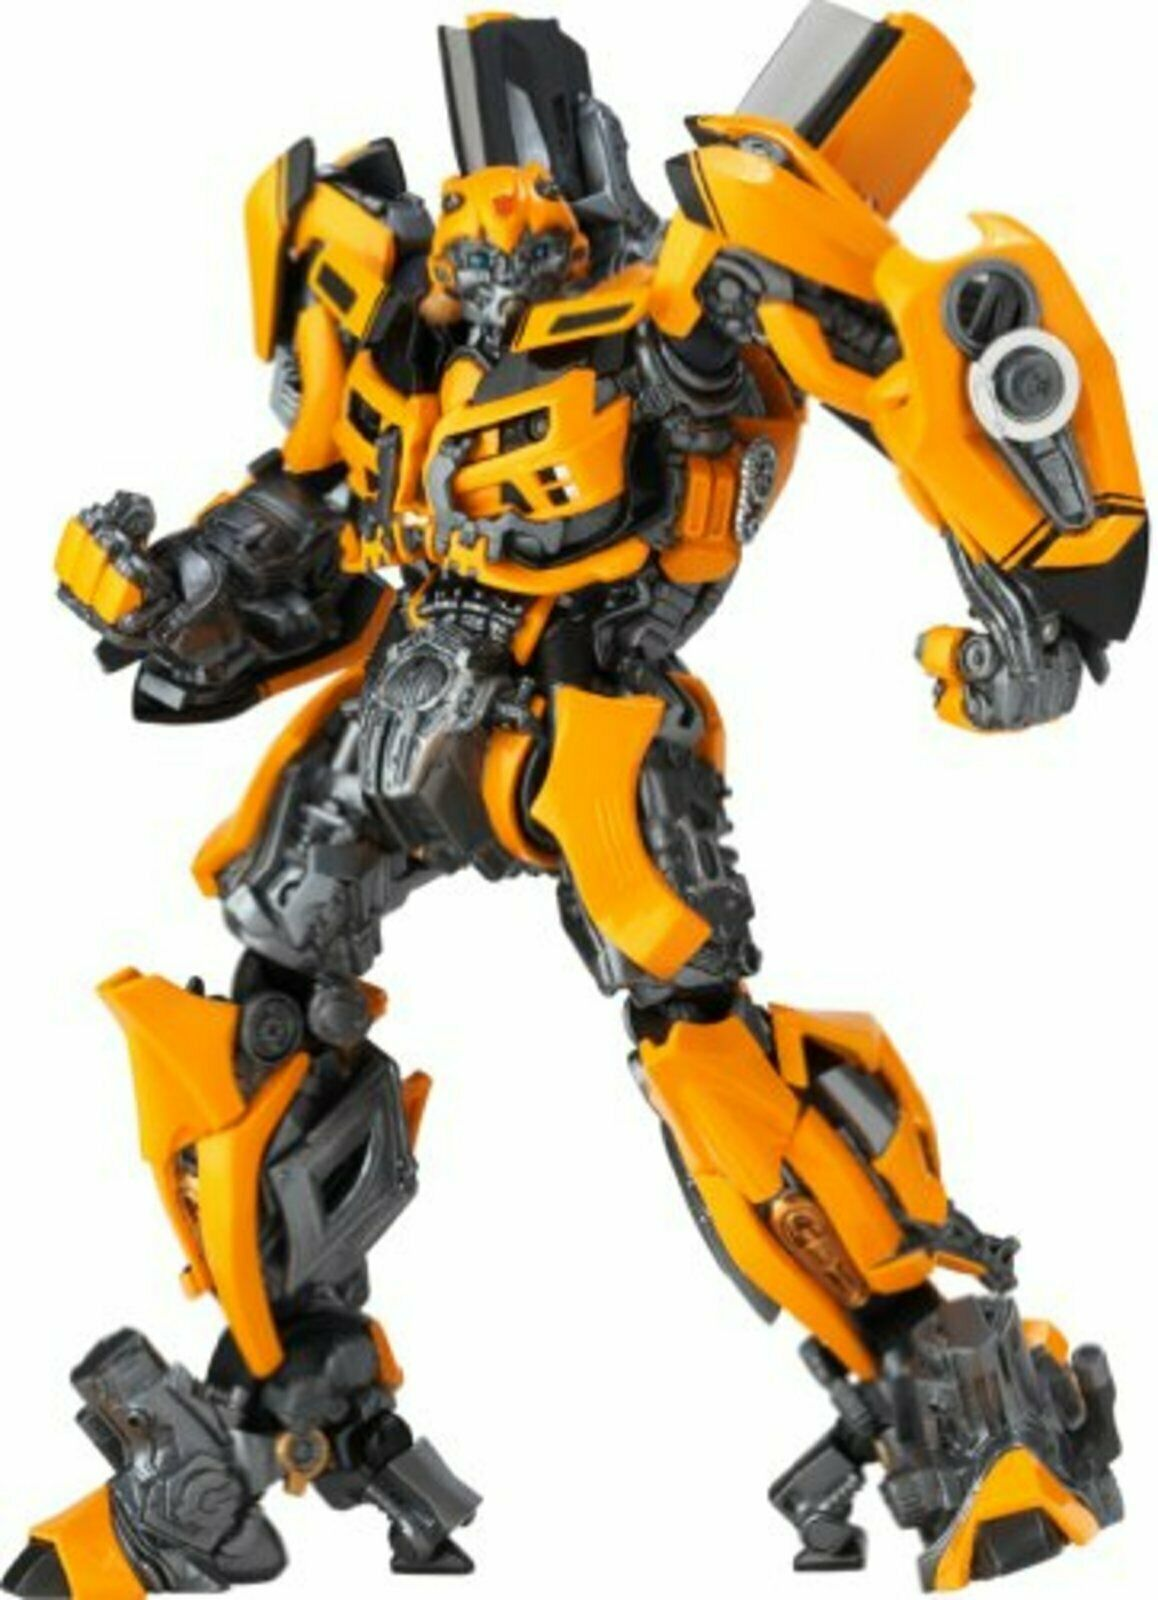 Tokusatsu Revoltech No.038 Transformers Dark Of The Moon Bumblebee Figurine F S